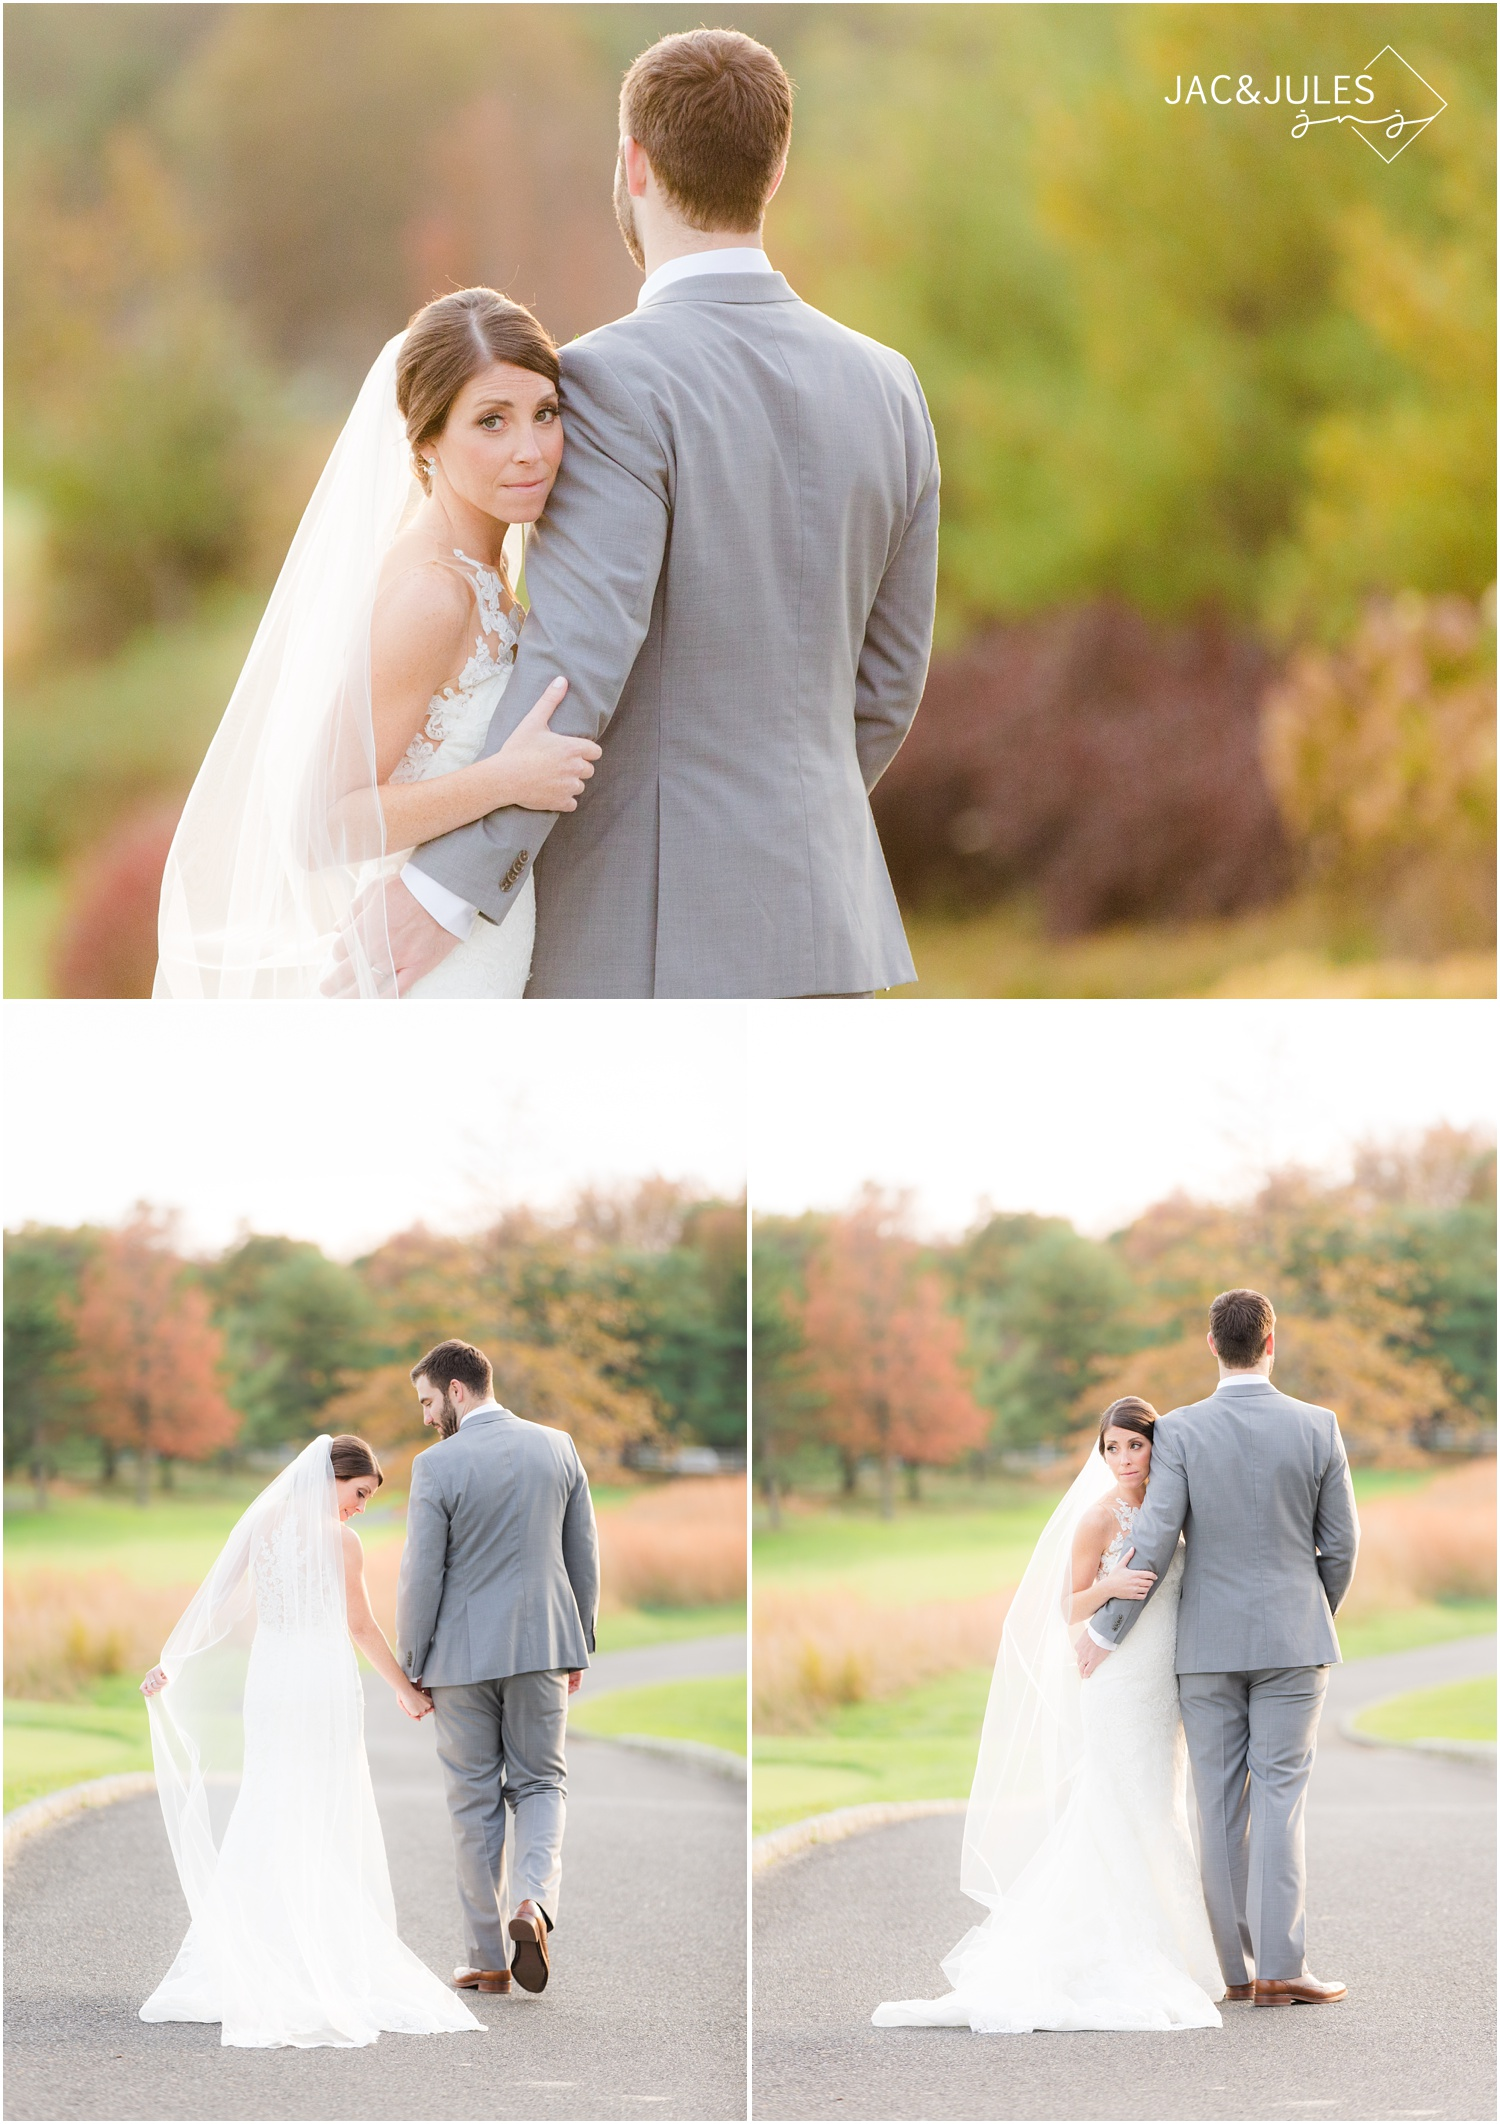 Bride and groom portraits in pretty fall colors at Eagle Oaks Golf and Country Club in Farmingdale, NJ.